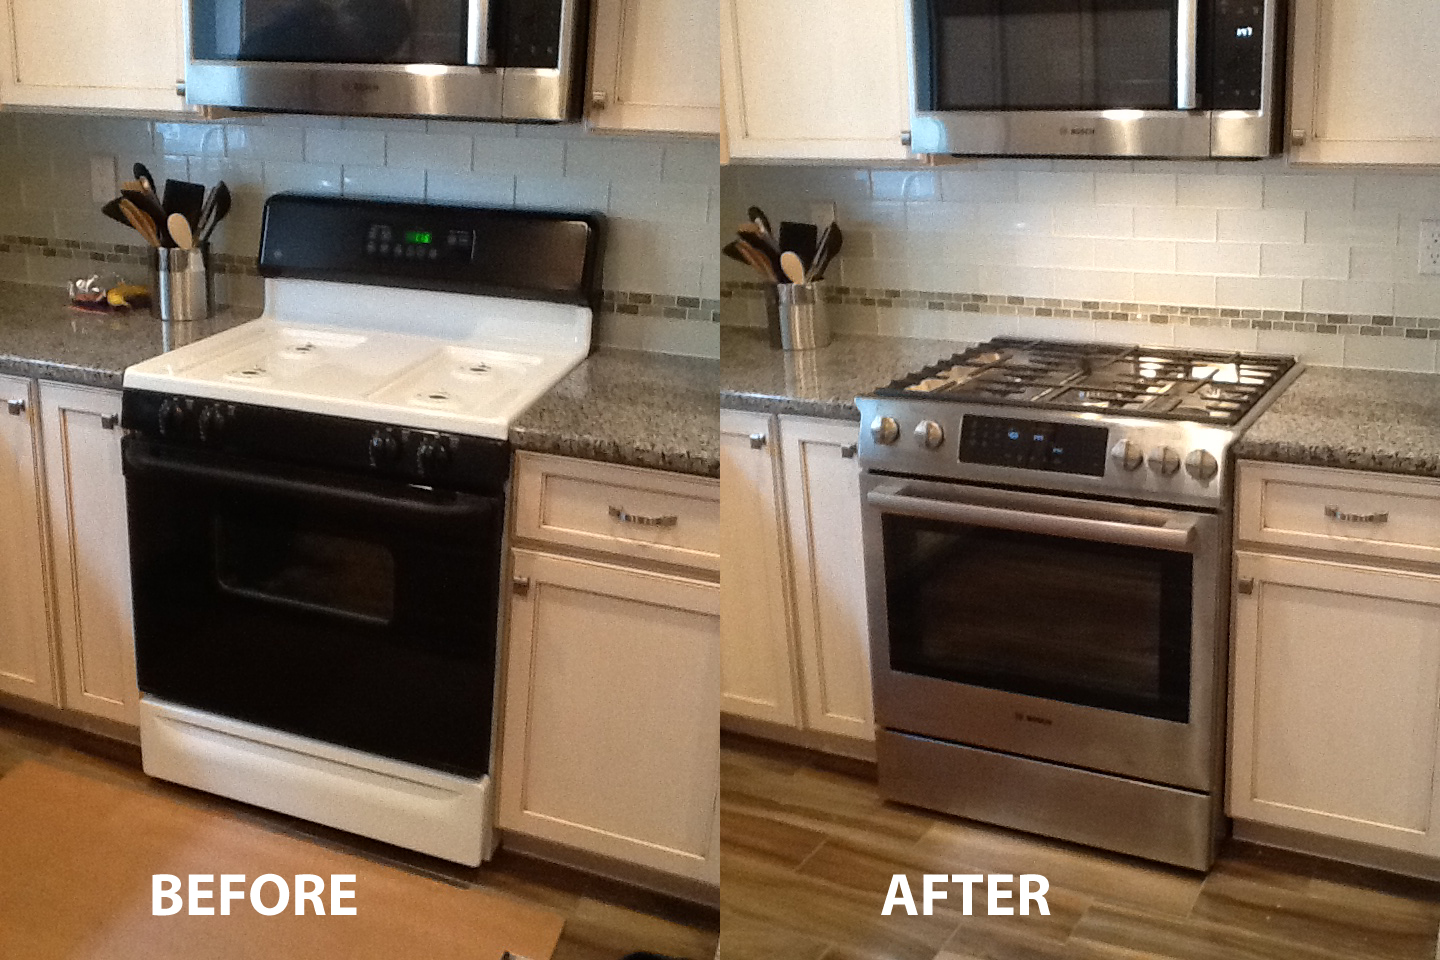 bosch kitchen suite and bathroom remodel new product | top line appliance center's blog